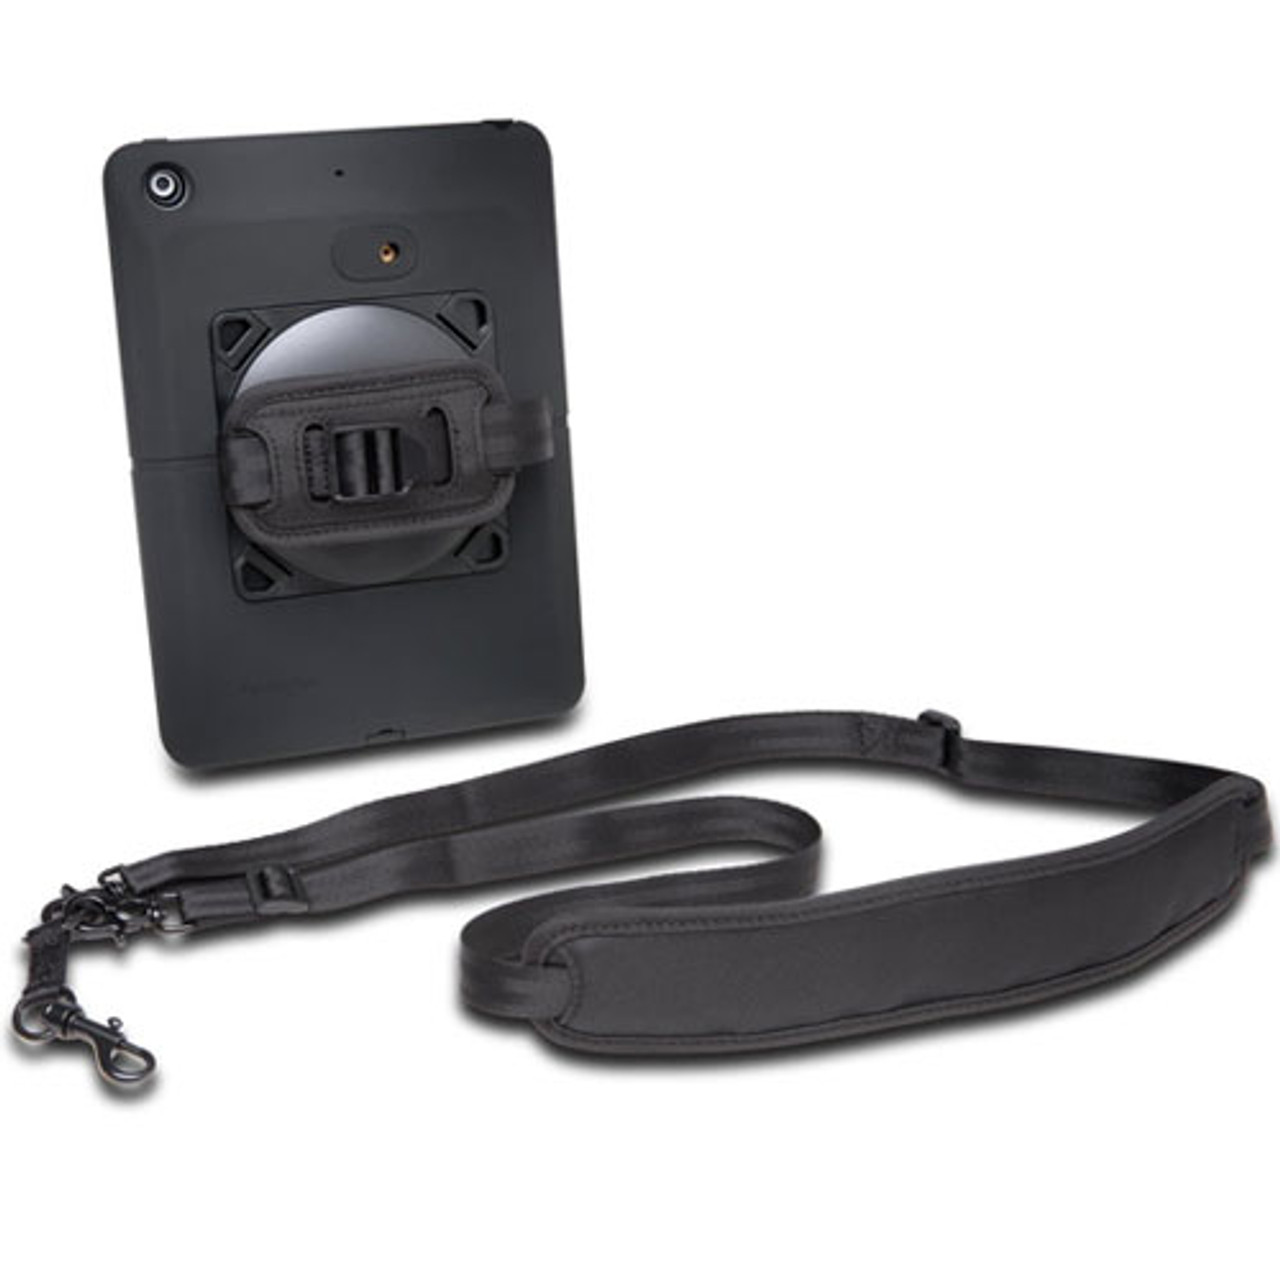 Image for Kensington Rotating Hand-Strap for SecureBack M Series CX Computer Superstore